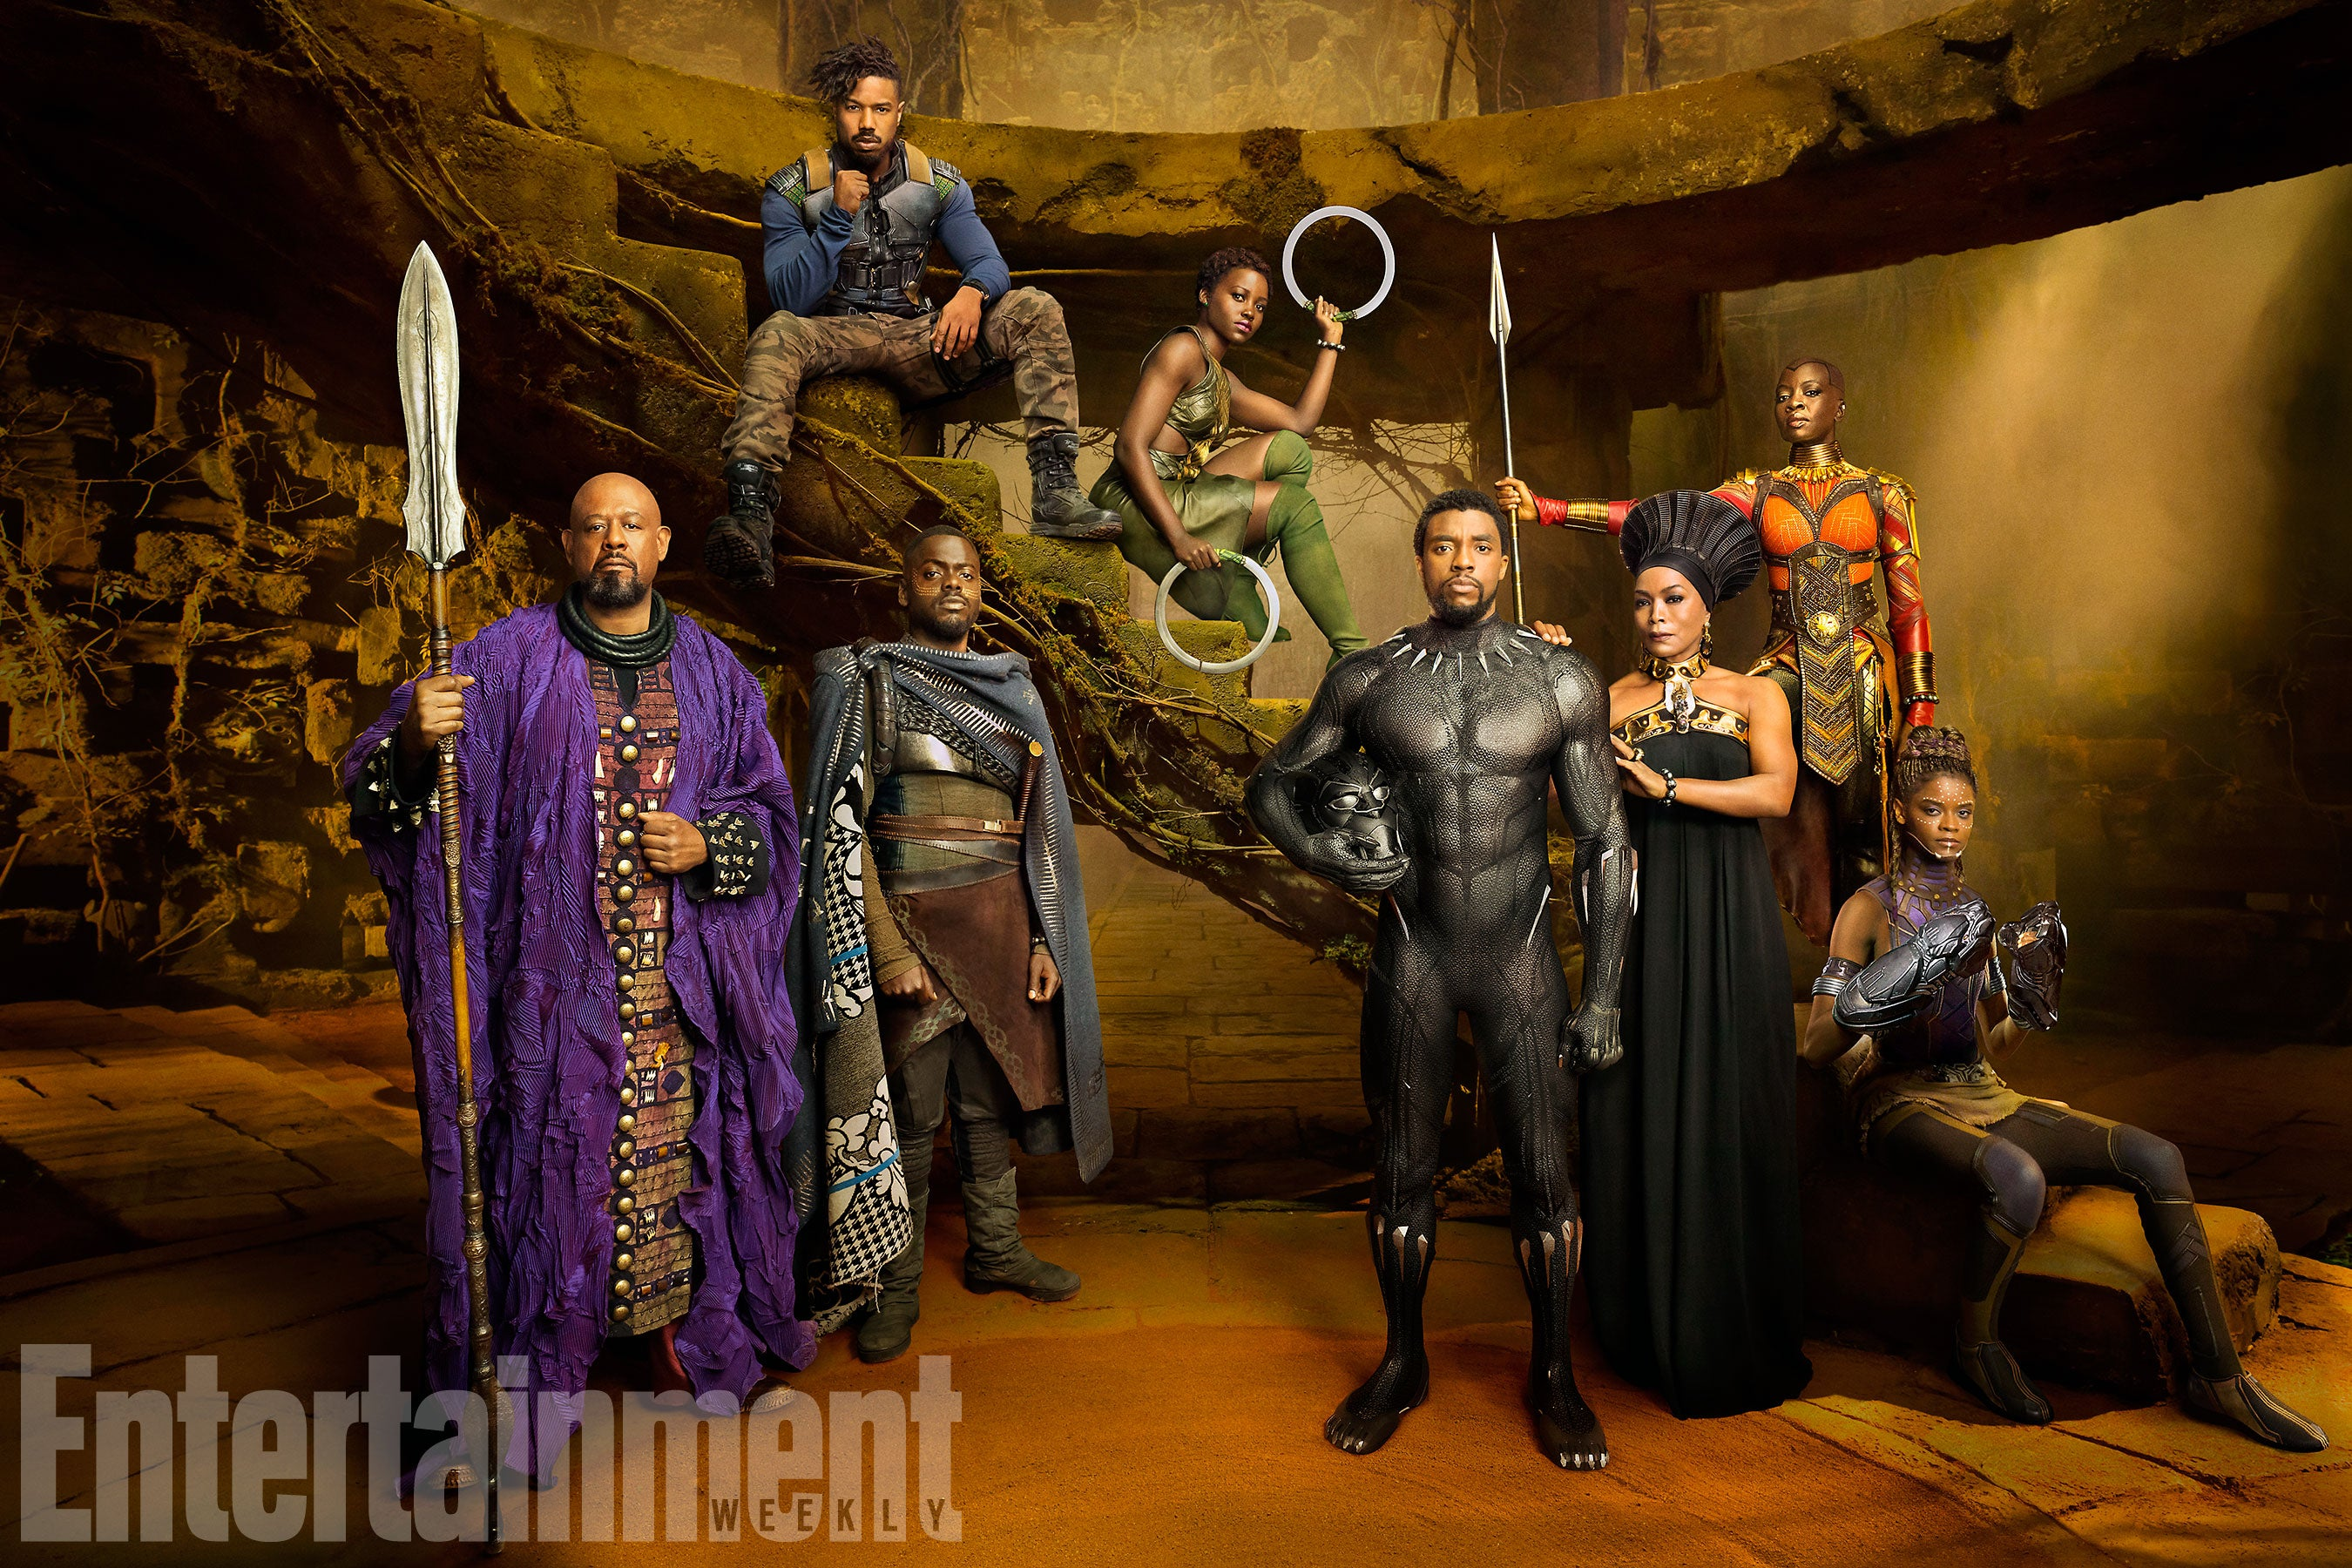 It's Official: 'Black Panther' Is The Biggest Superhero Film Ever